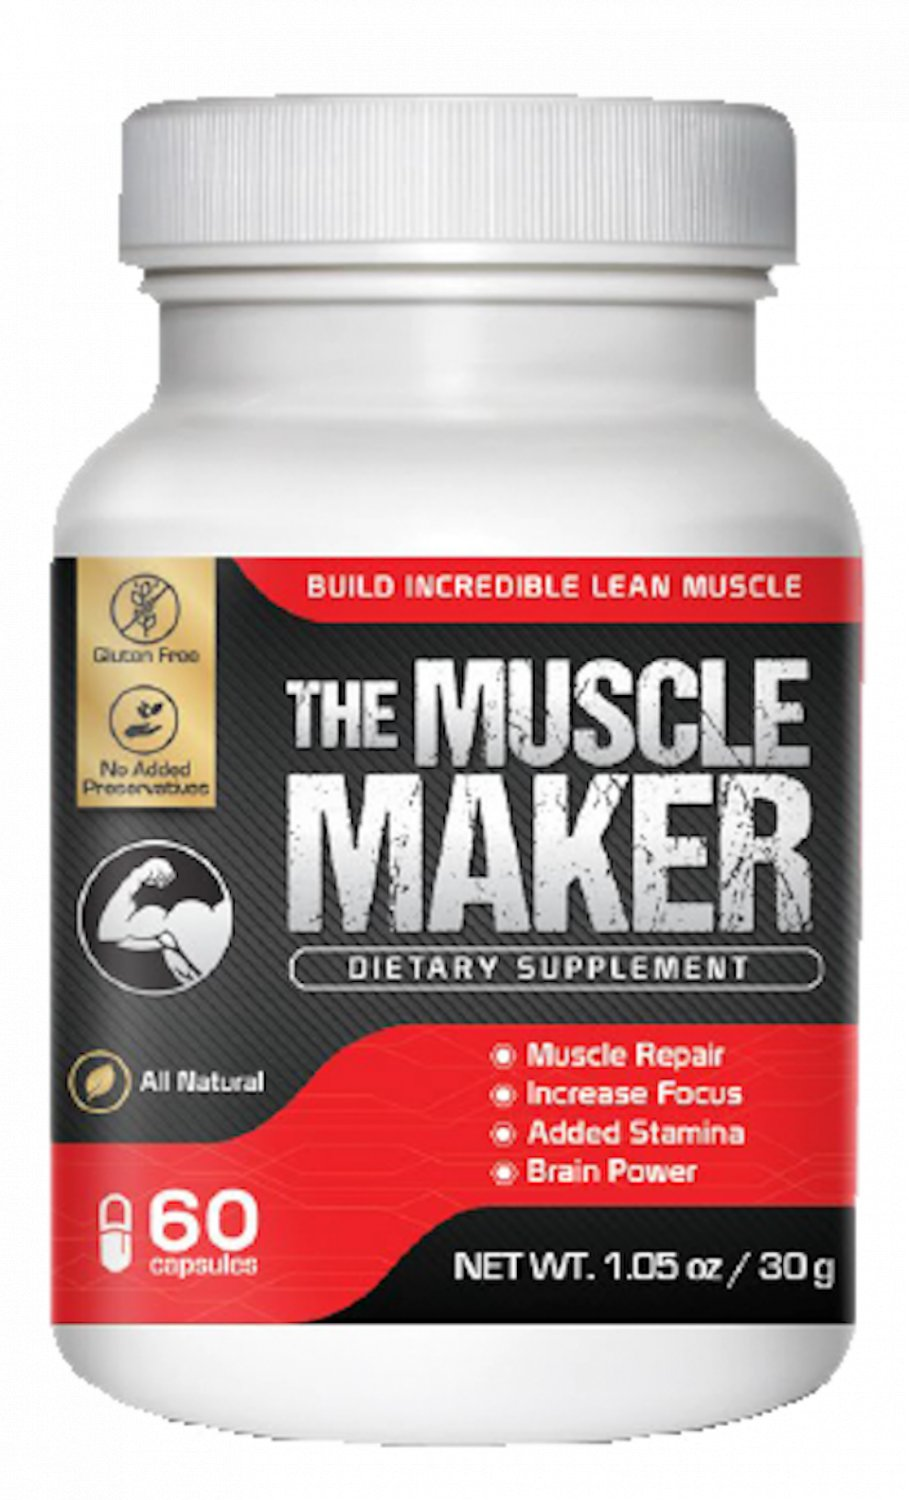 The Muscle Maker